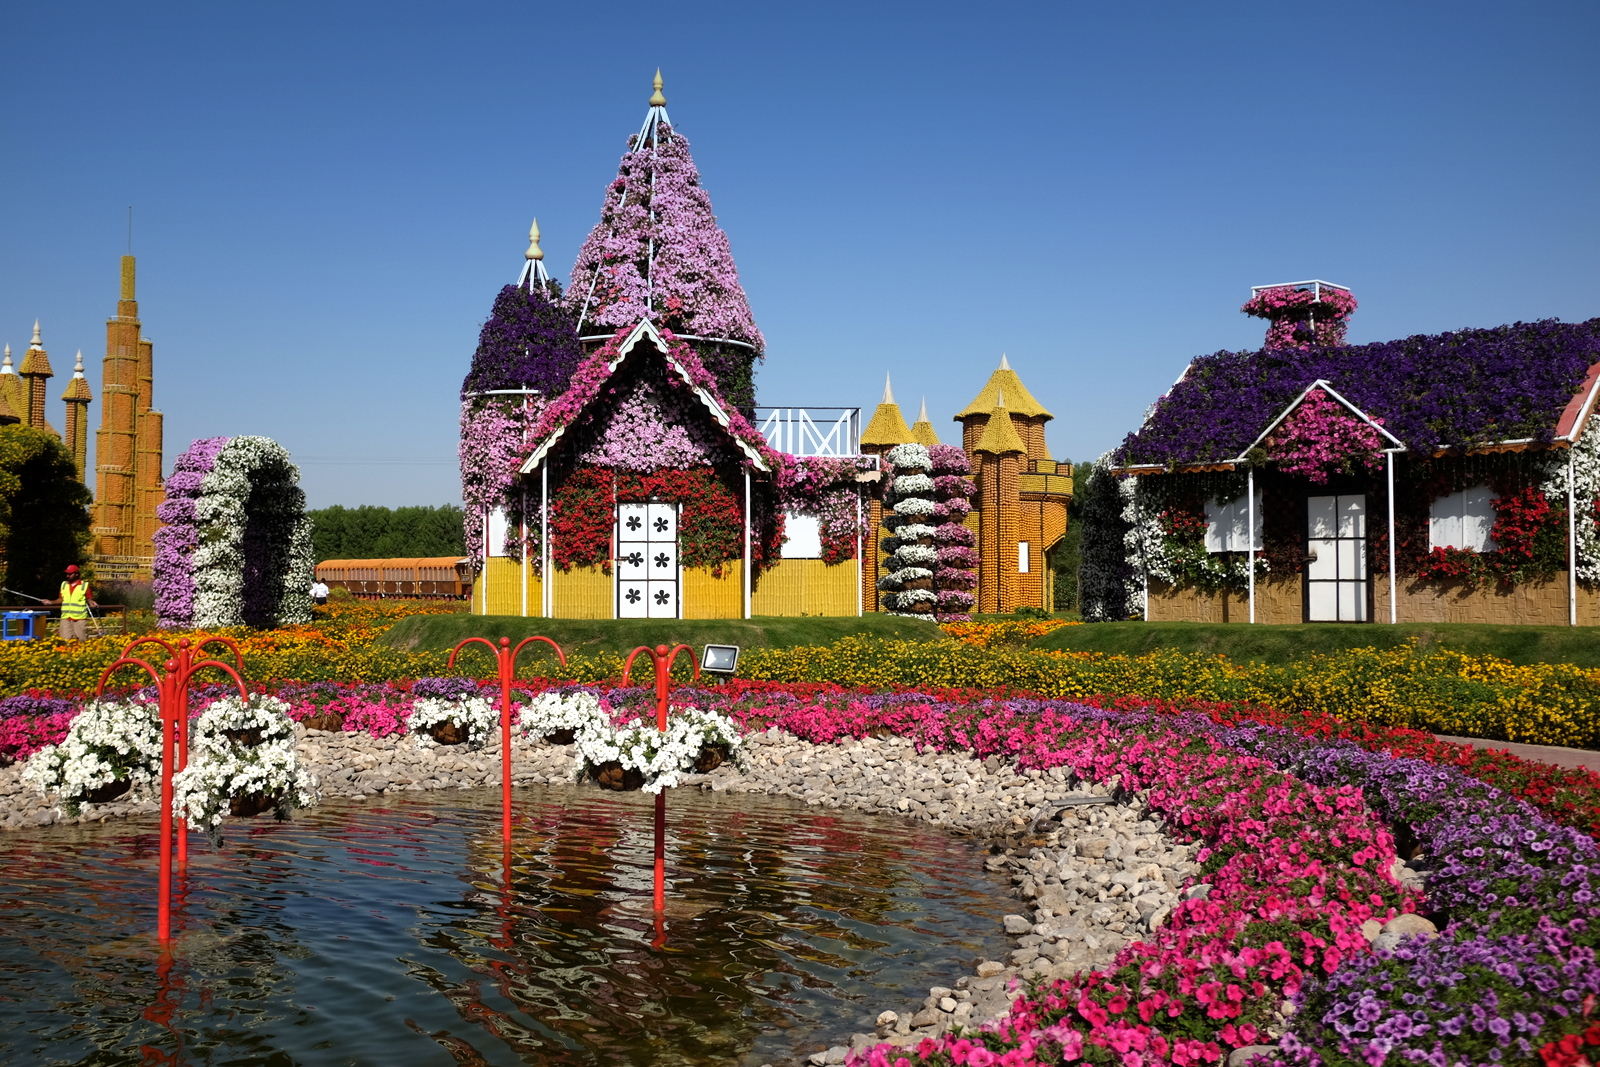 Dubai Miracle Garden - Houses and lake